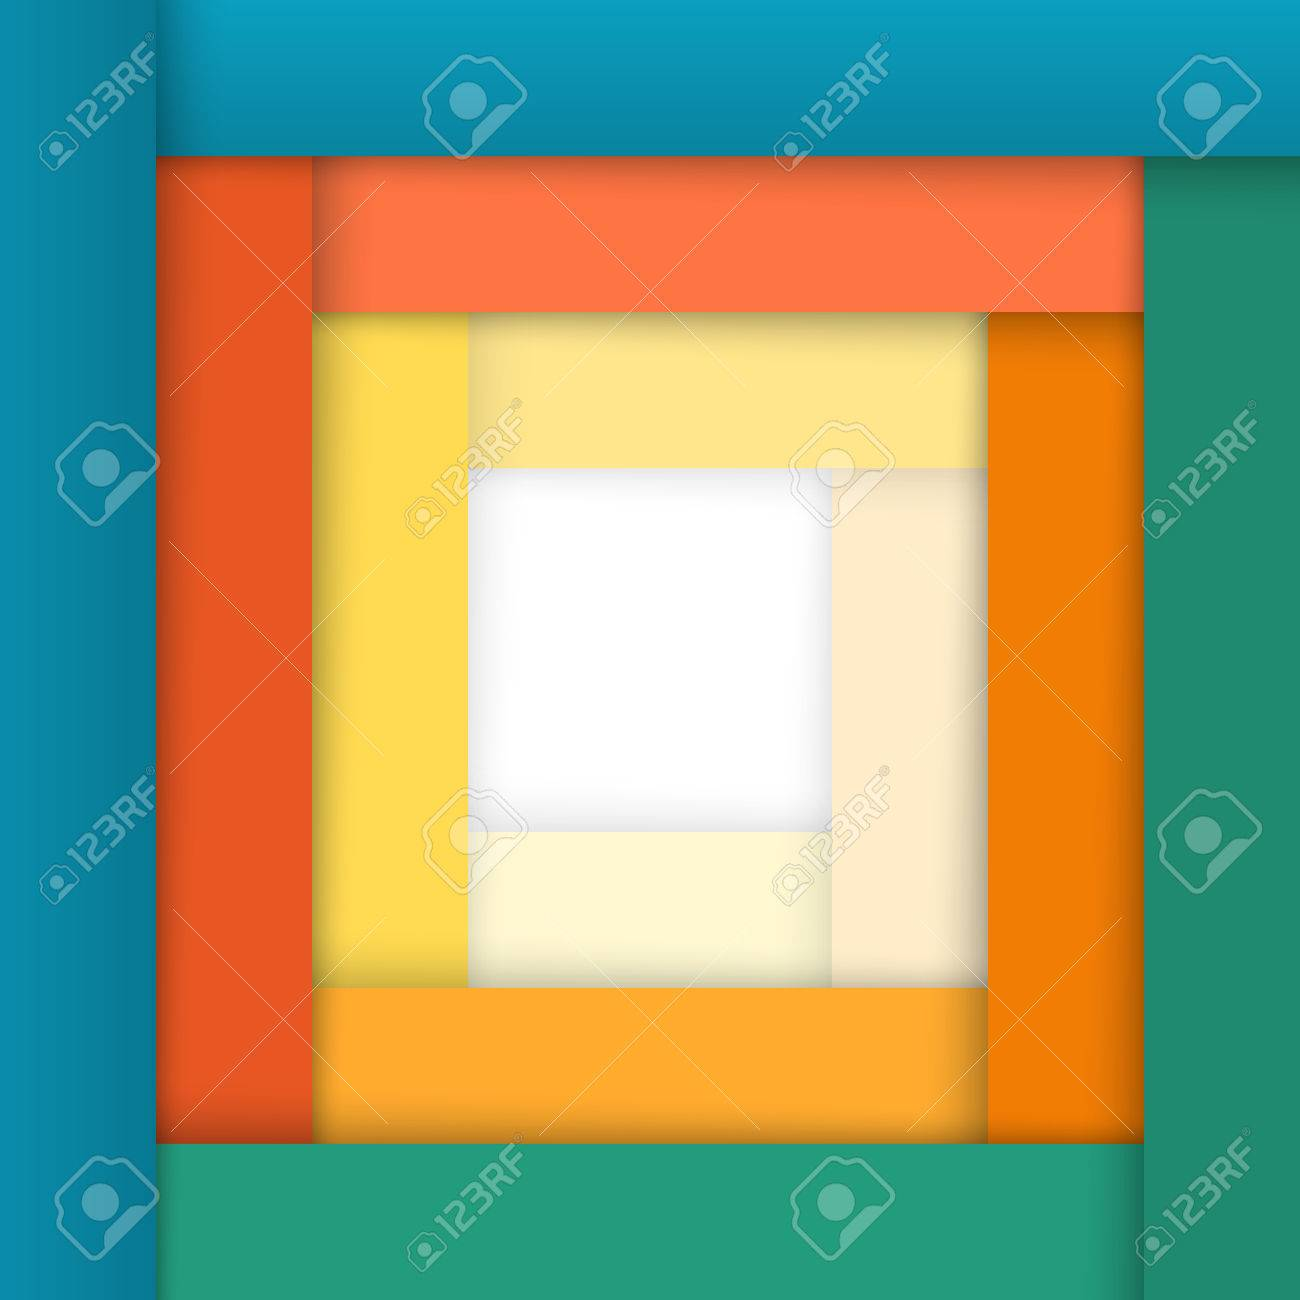 abstract colors stripes frame background design elements for abstract colors stripes frame background design elements for cover page magazine business flyer or